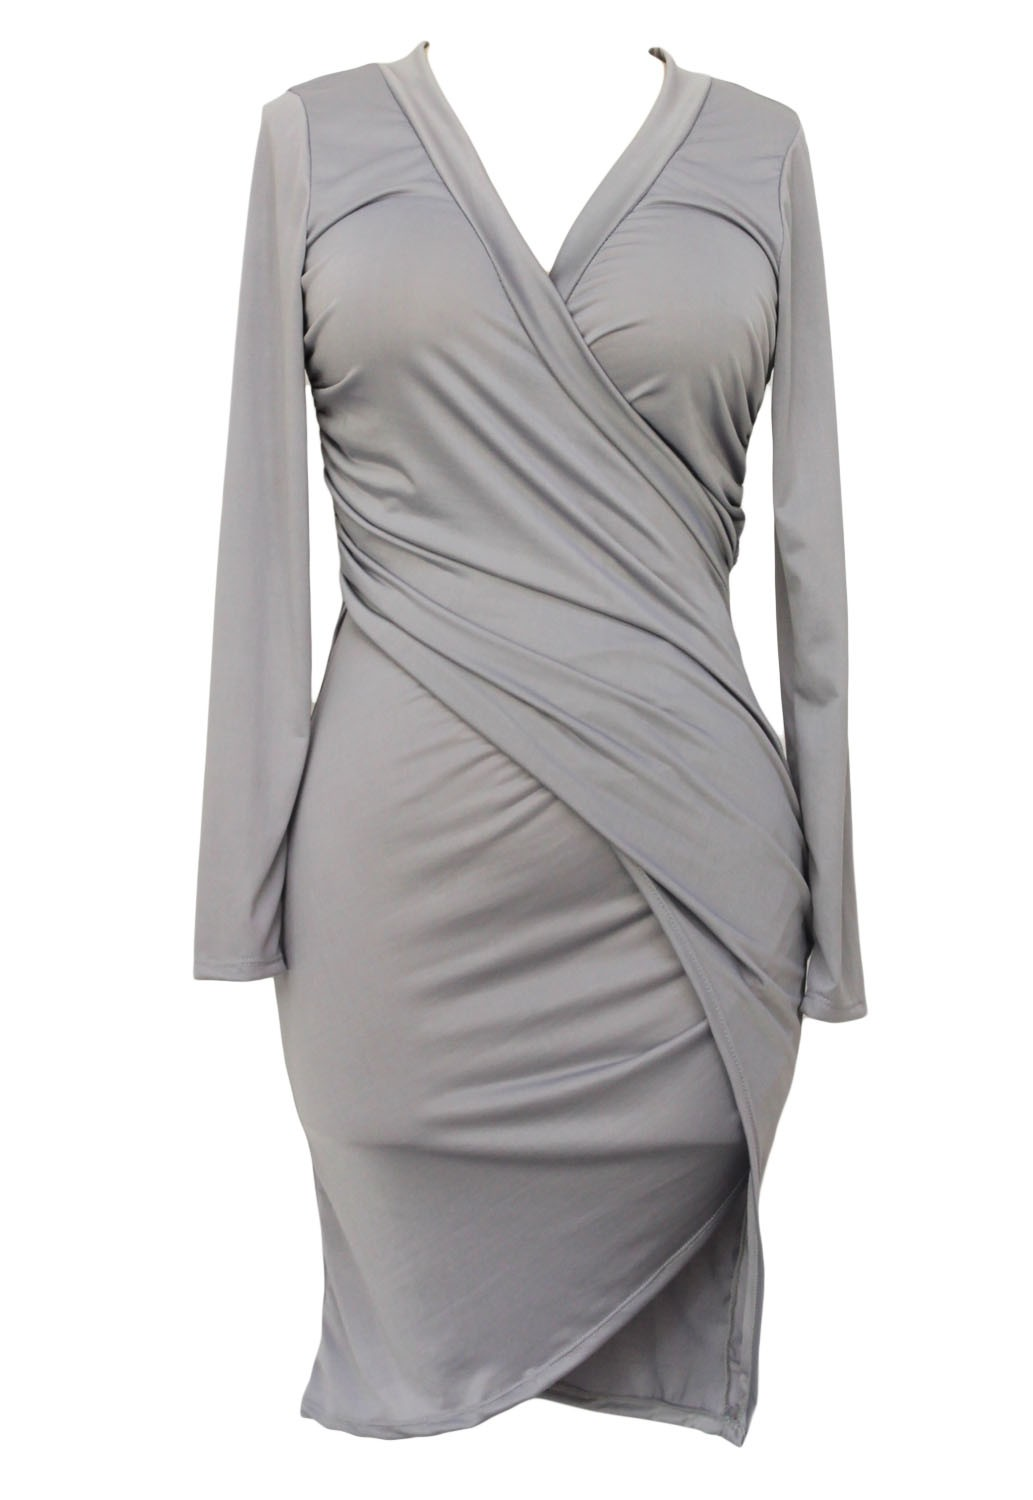 Sodraya grey deep v neck draped bodycon dress